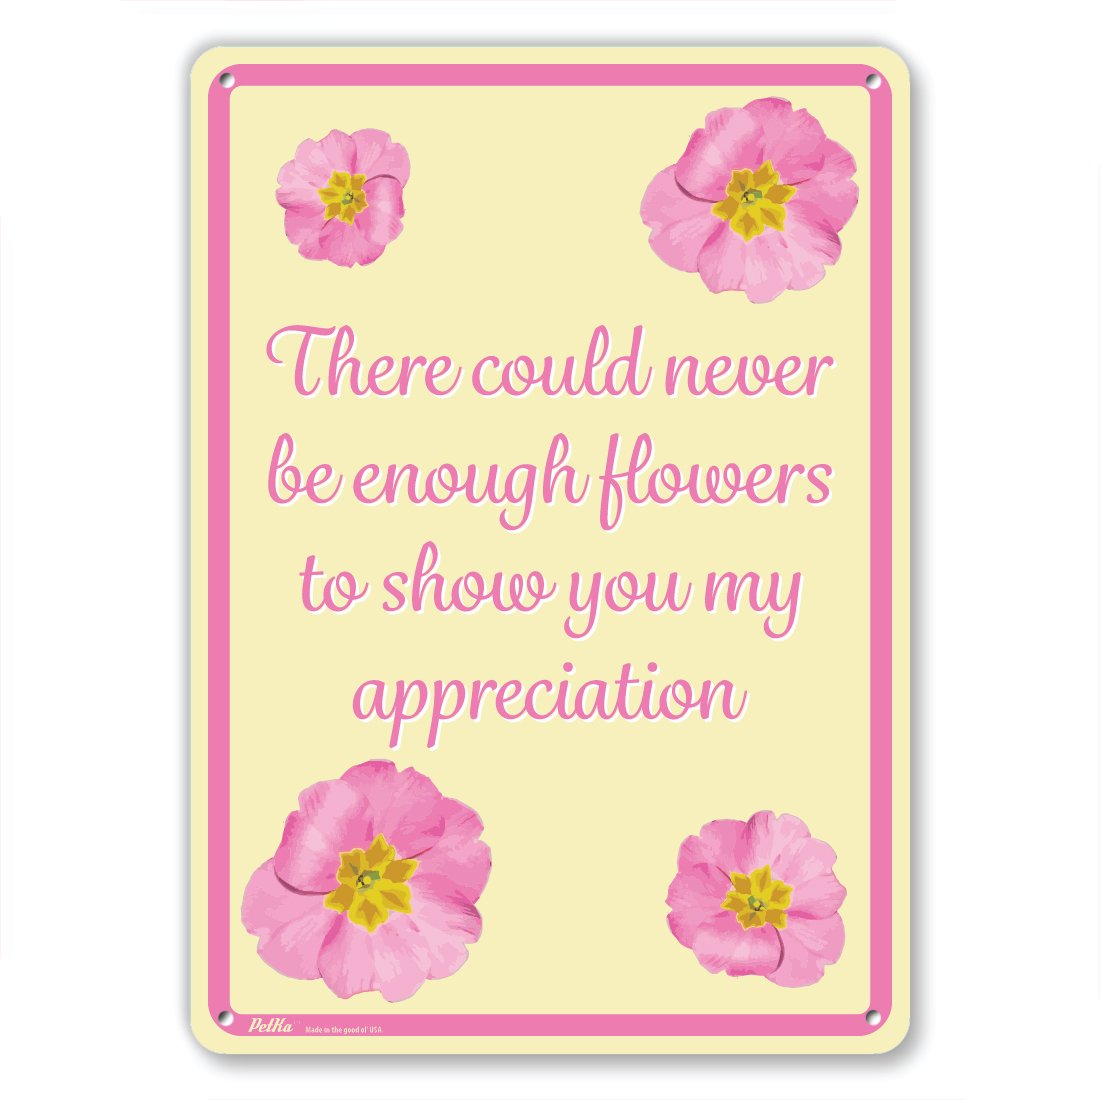 Pink Flowers on Yellow PetKa Signs and Graphics PKFW-0034-NA/_7x10There could never be enough flowers to show you my appreciation Aluminum Sign 7 x 10